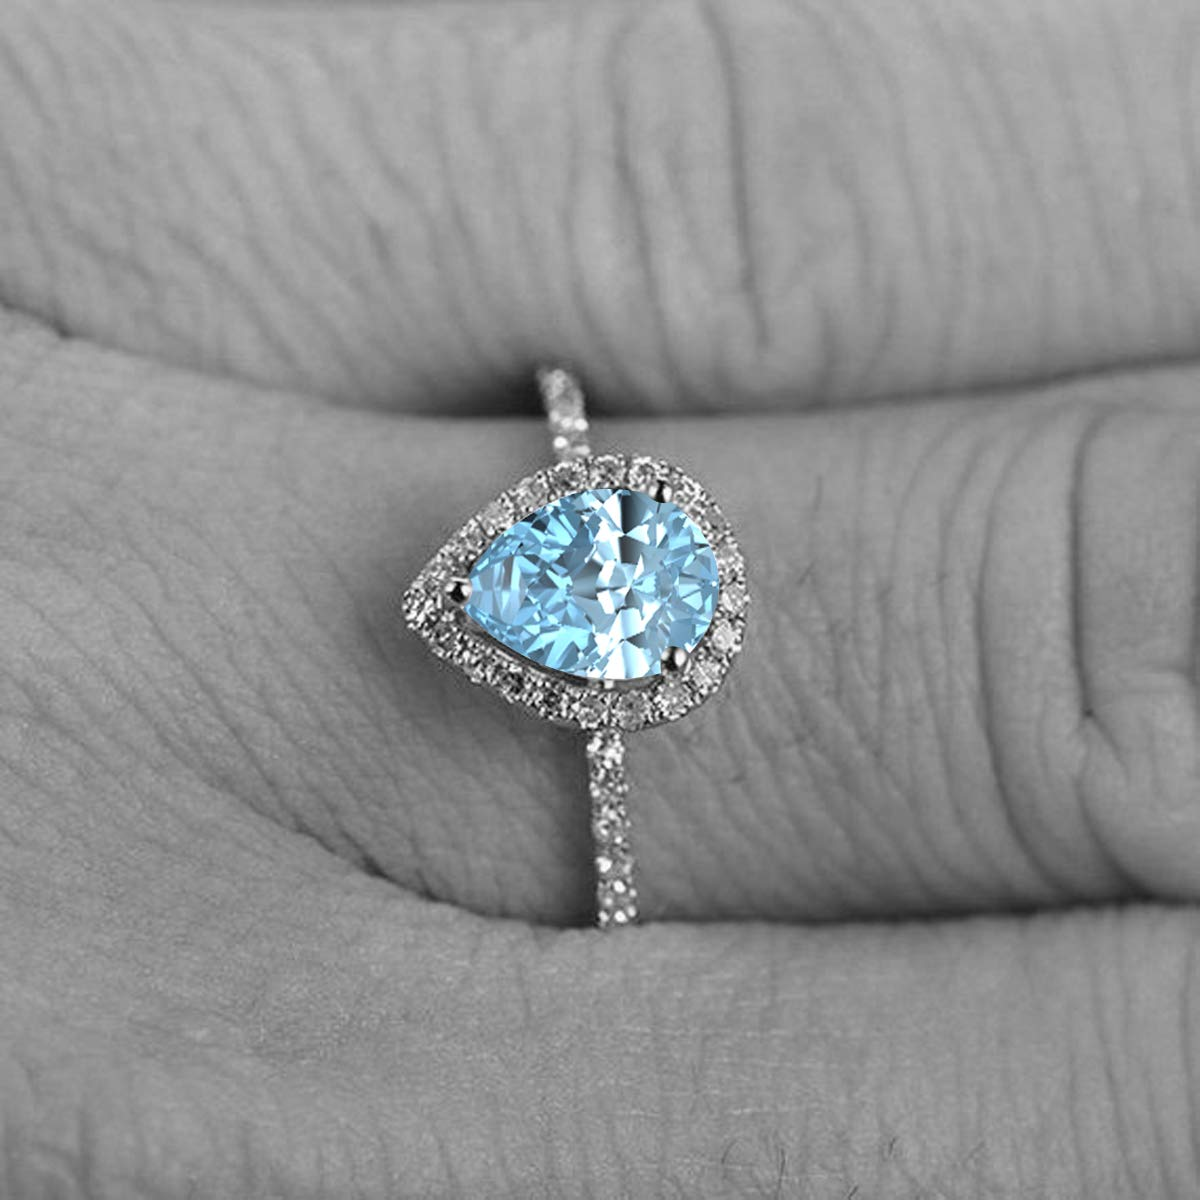 1.50 Ctw Pear Shaped Created Gemstone 14k White Gold Over .925 Sterling Silver Engagement Ring for Womens